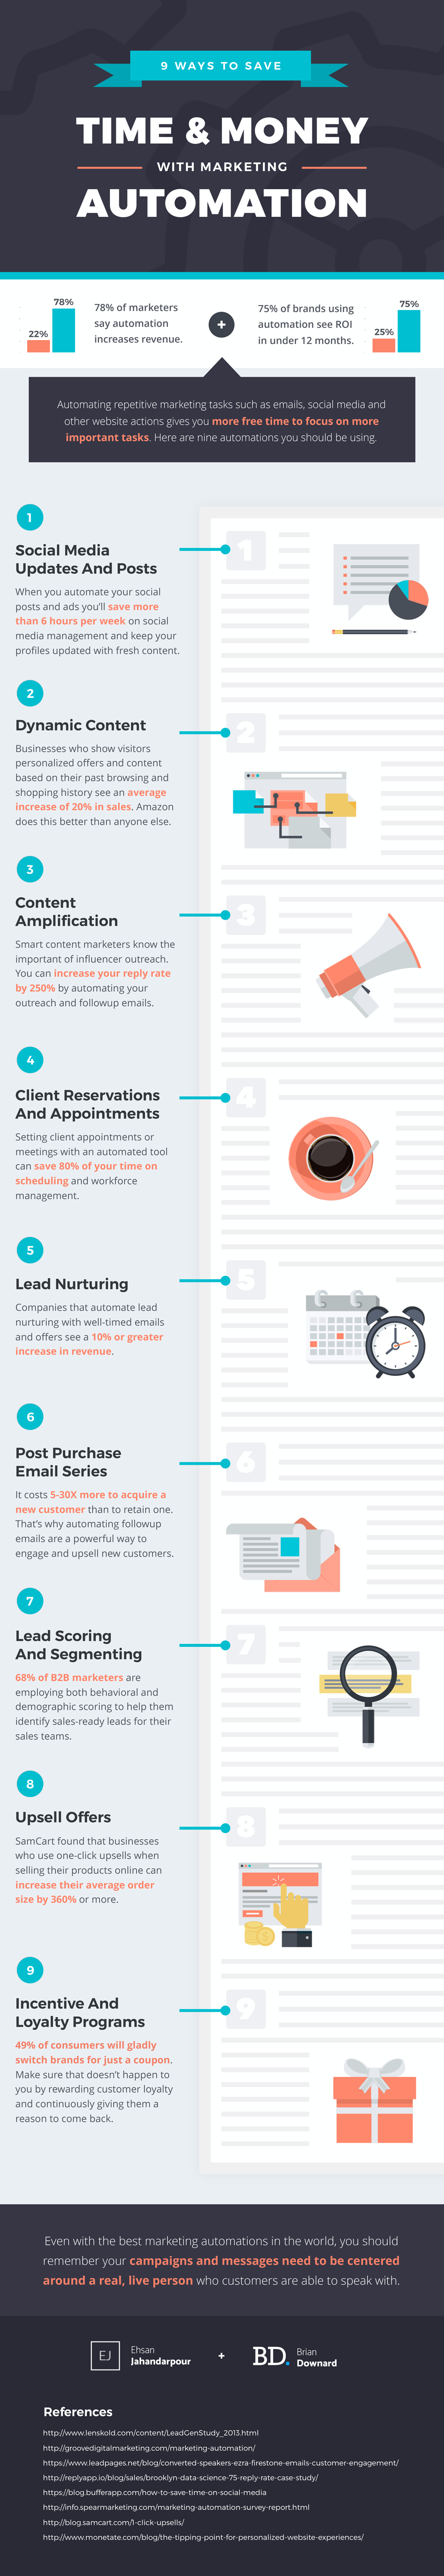 9 ways marketing automation can save you time and money.png